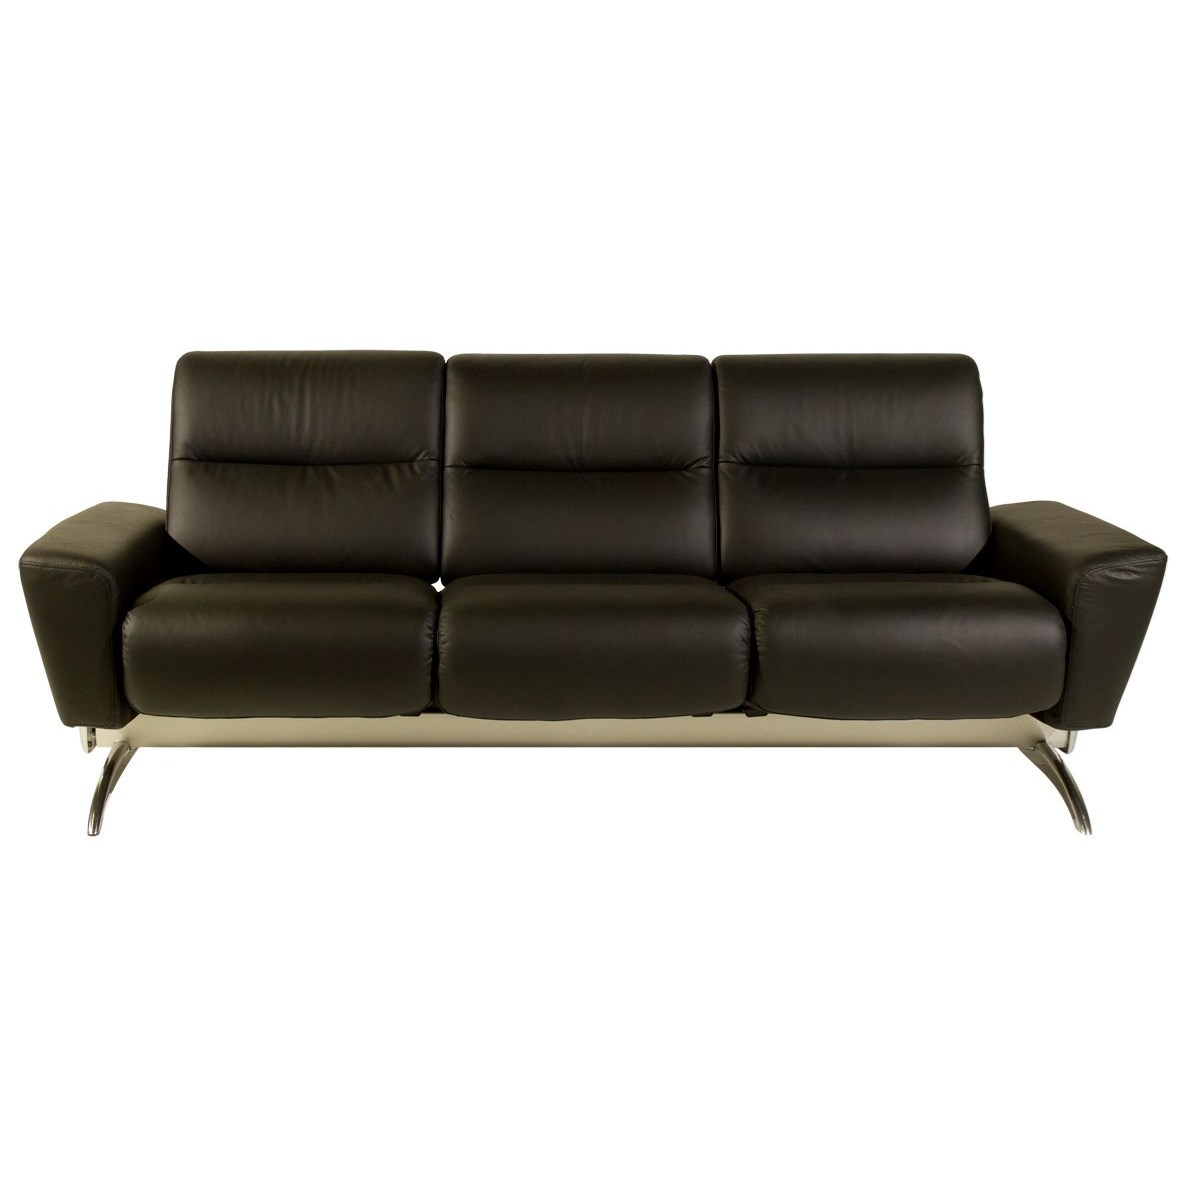 Stressless You Julia Sofa With BalanceAdapt™ By Stressless By Ekornes